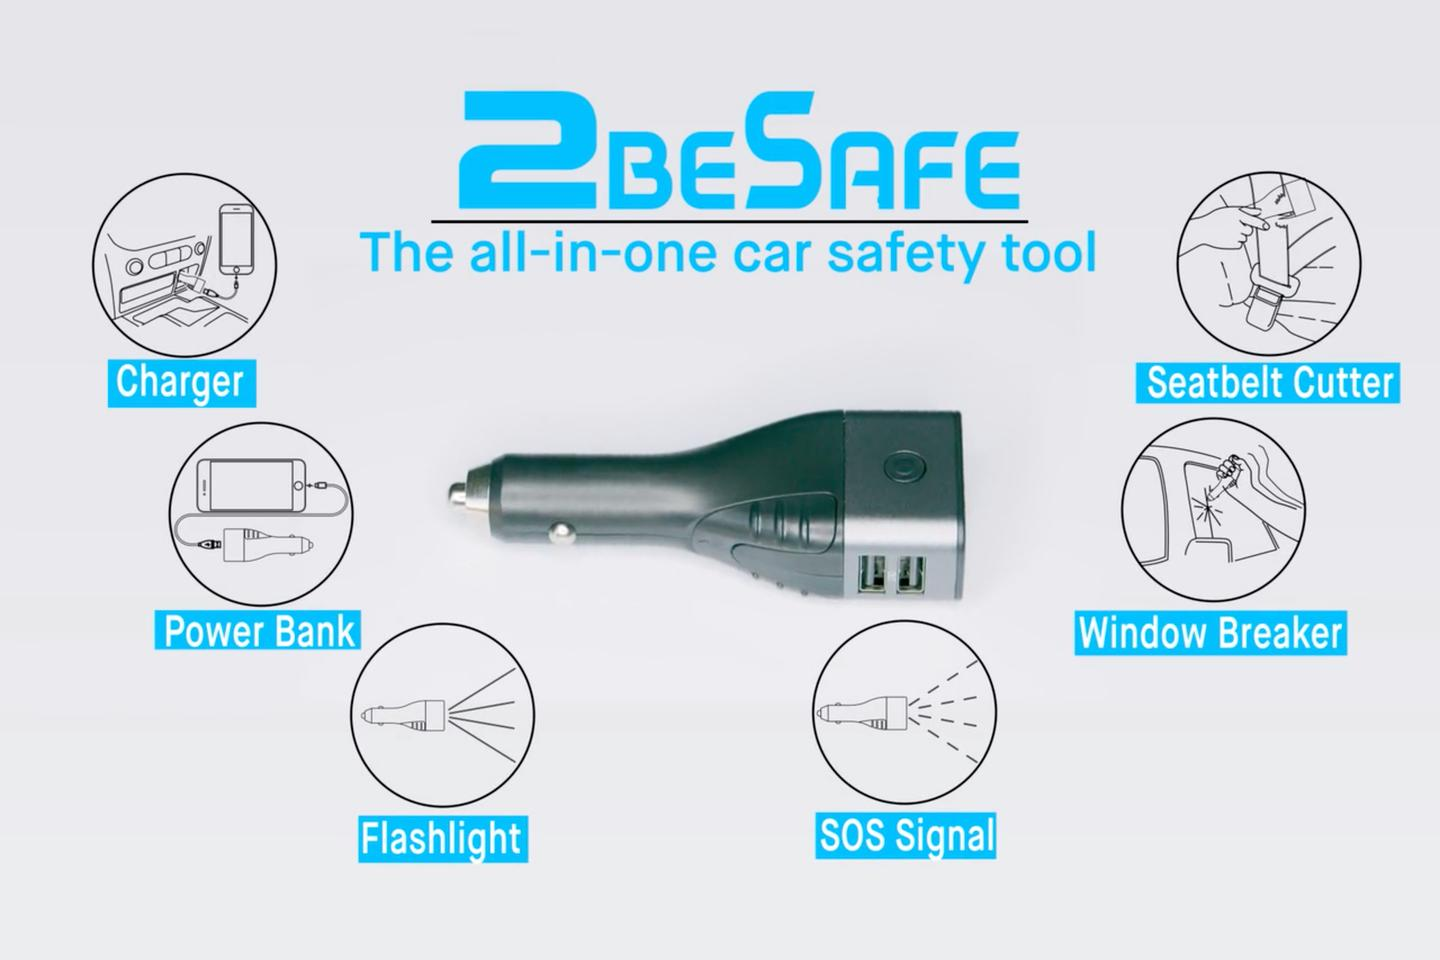 A car emergency multitool that's always within reach